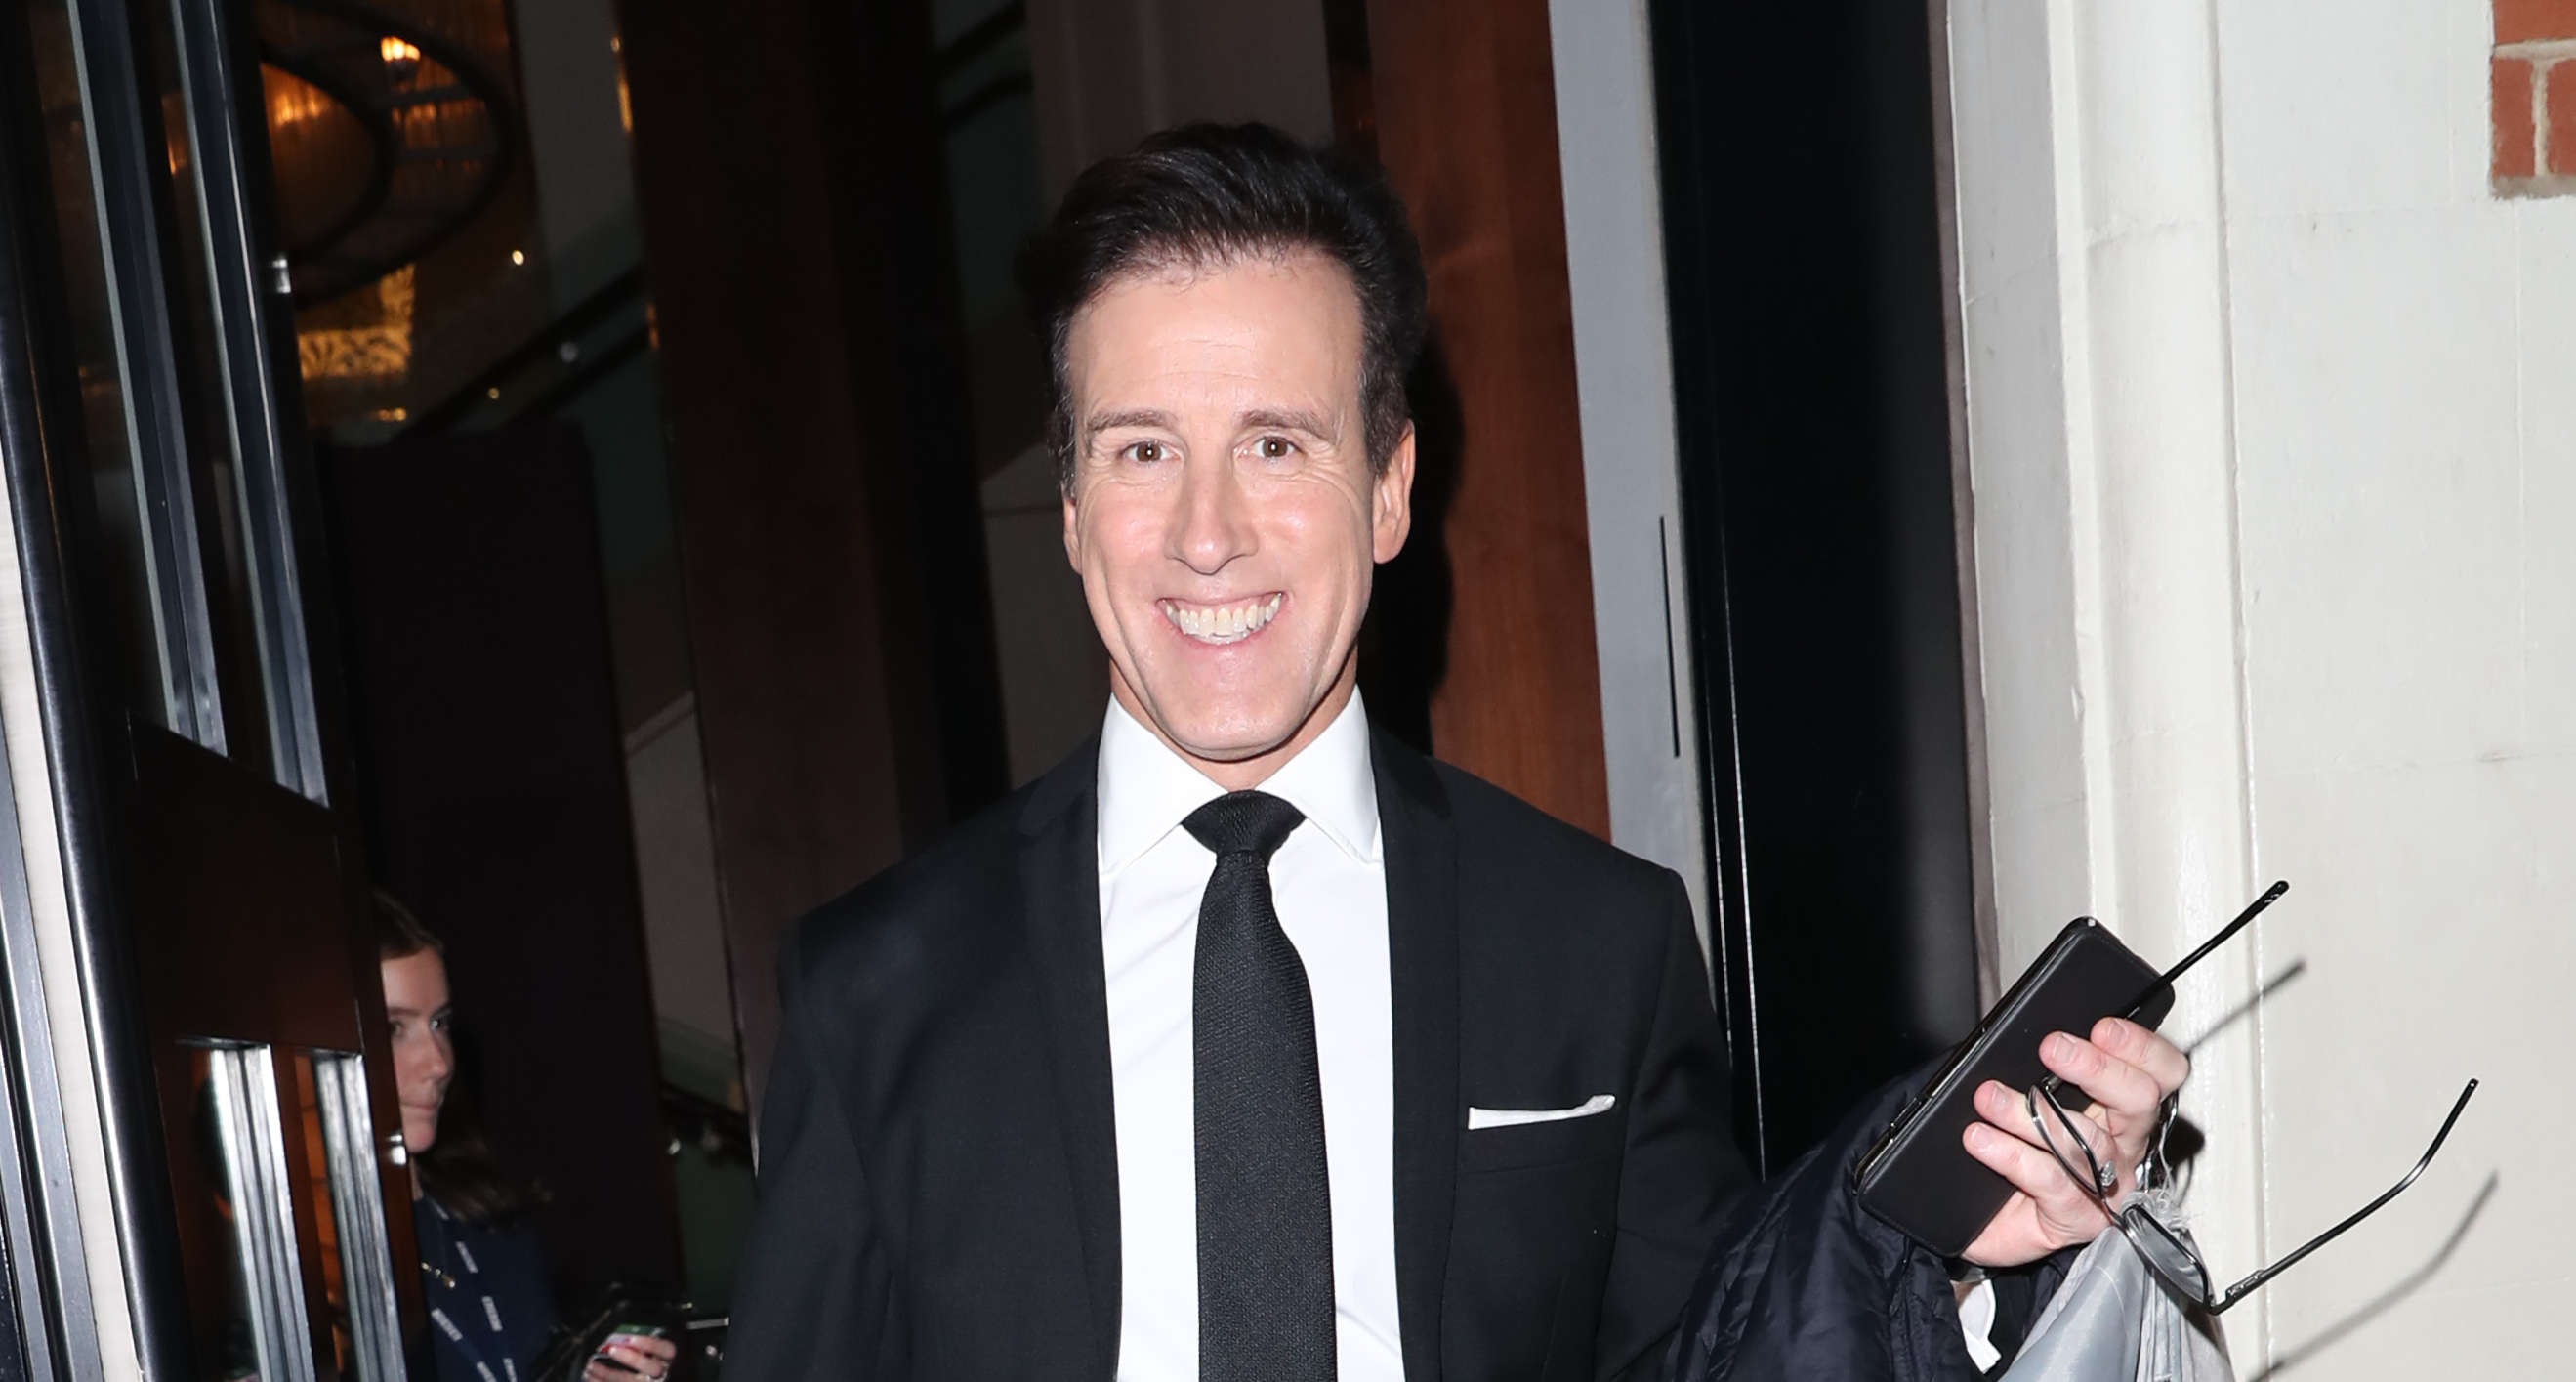 Strictly Come Dancing: Anton Du Beke 'tipped to retire' after this year's series final